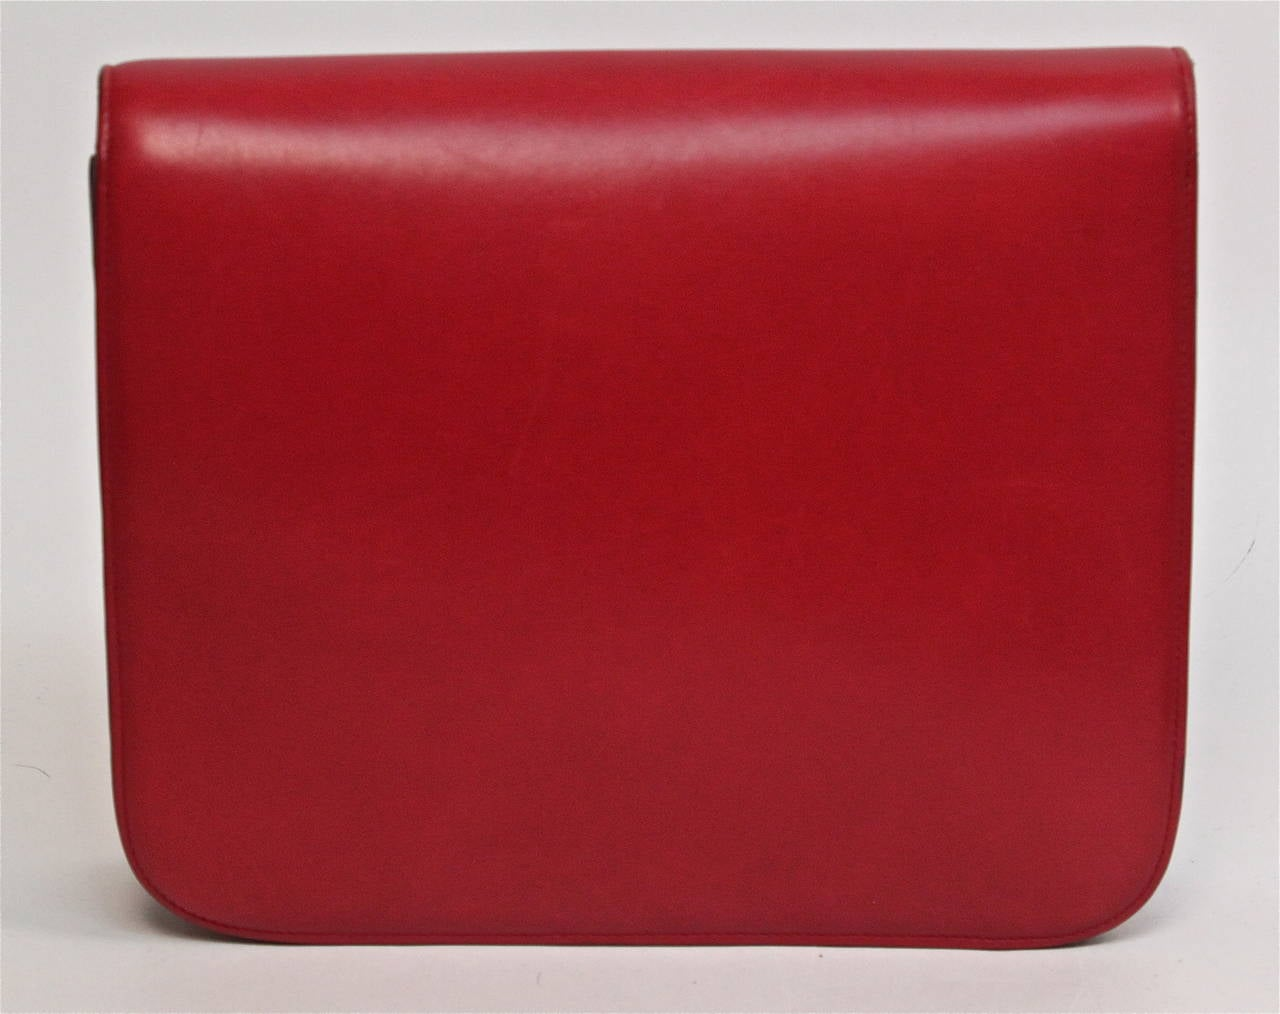 CELINE large classic box leather bag with convertible strap in red In Excellent Condition For Sale In San Fransisco, CA